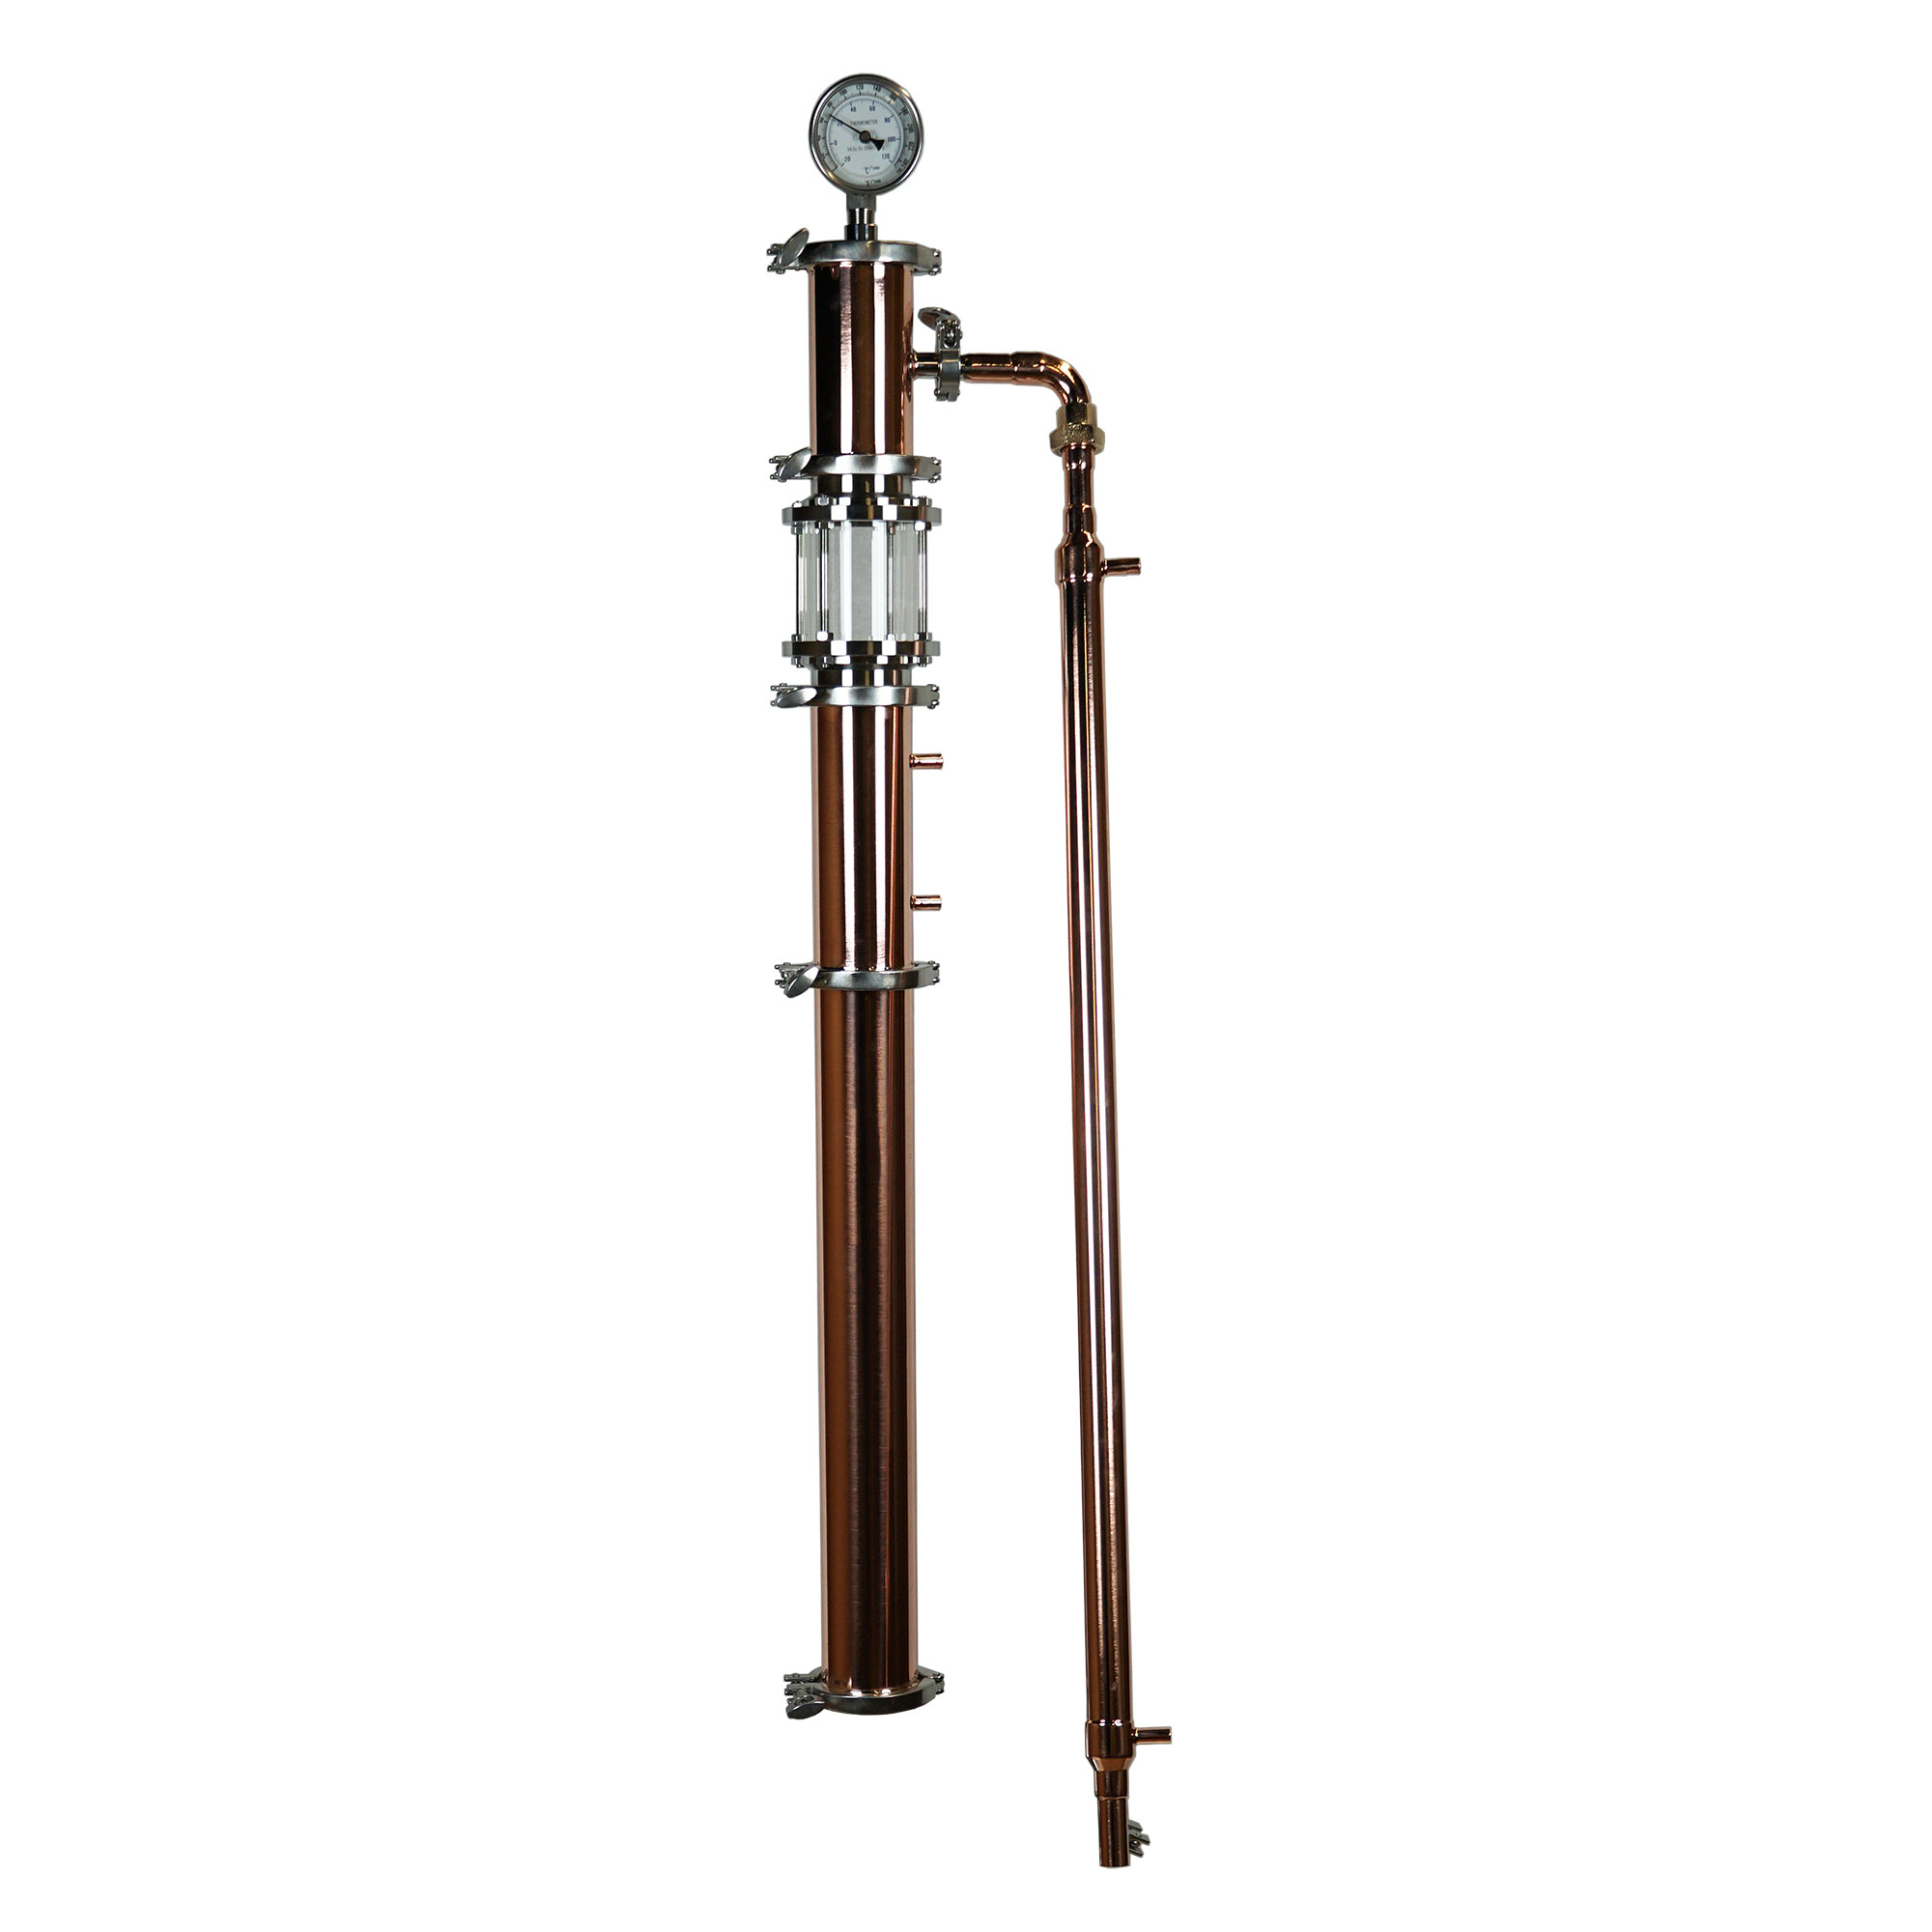 16 Gallon with Copper 3 Inch Diameter Torpedo Pro Tower Only